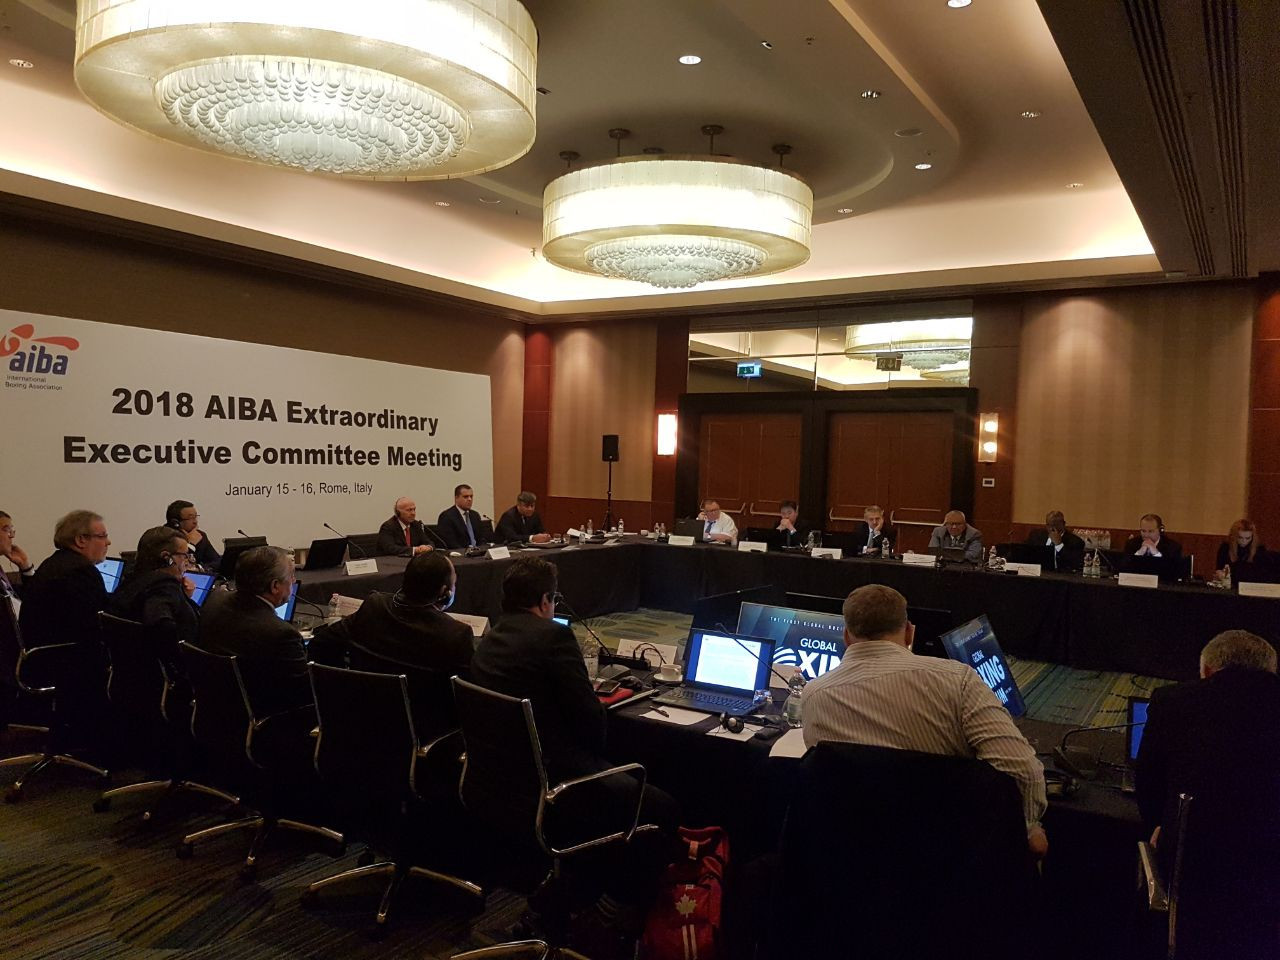 The first Executive Committee since CK Wu's departure as President took place earlier this month in Rome ©AIBA